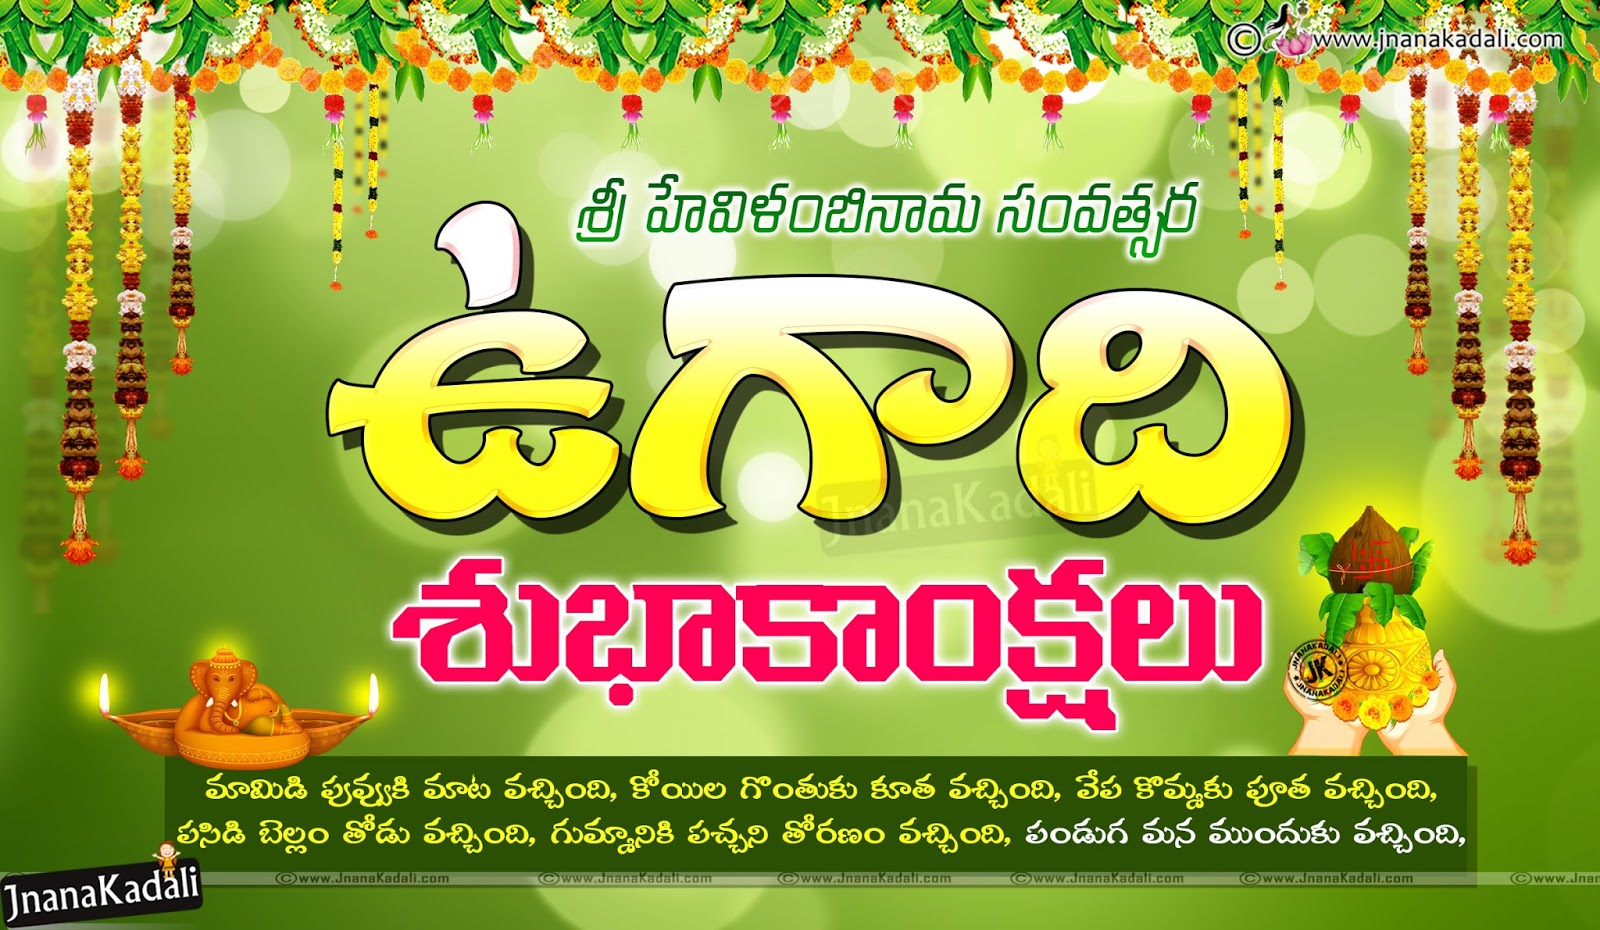 Telugu samvatsaraadi ugadi 2017 greetings sri hevilambinama telugu ugadi wallpapers ugadi information in telugu telugu quotes on ugadi m4hsunfo